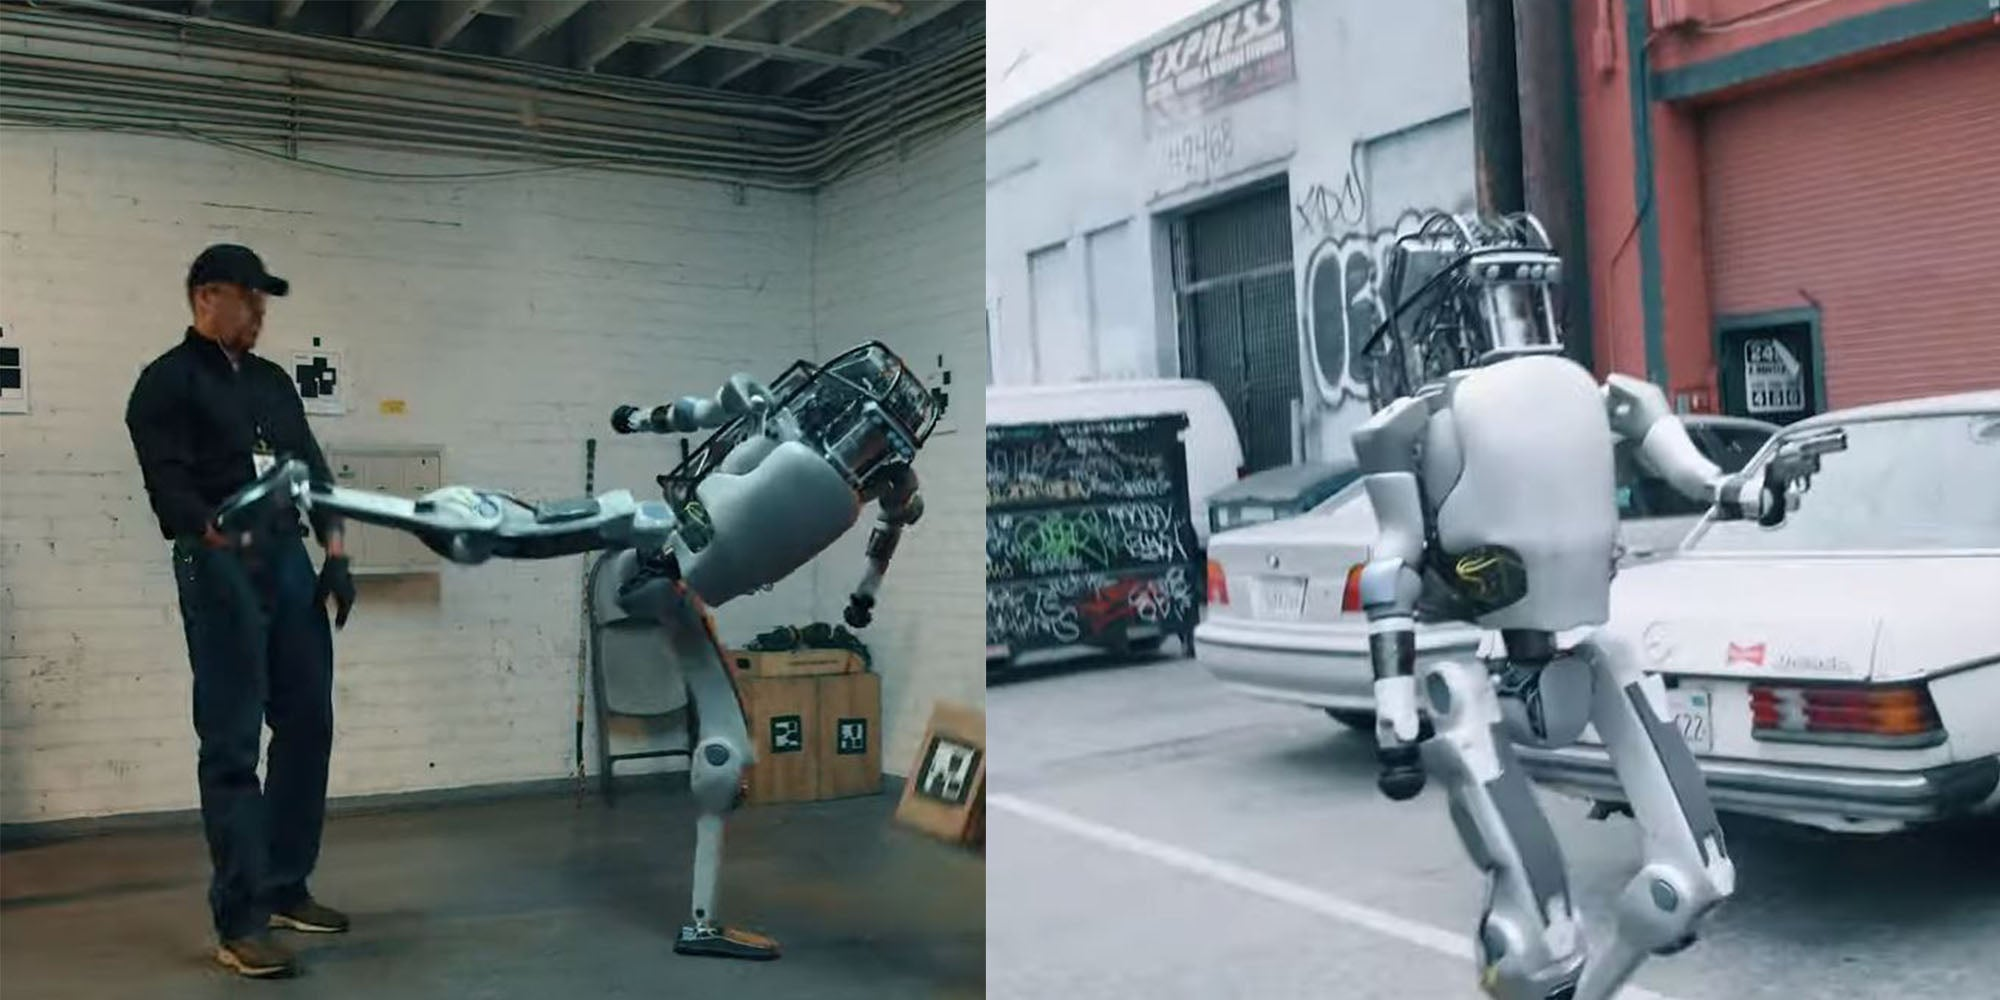 FAKE Video of Boston Dynamics Robot fighting against humans goes viral